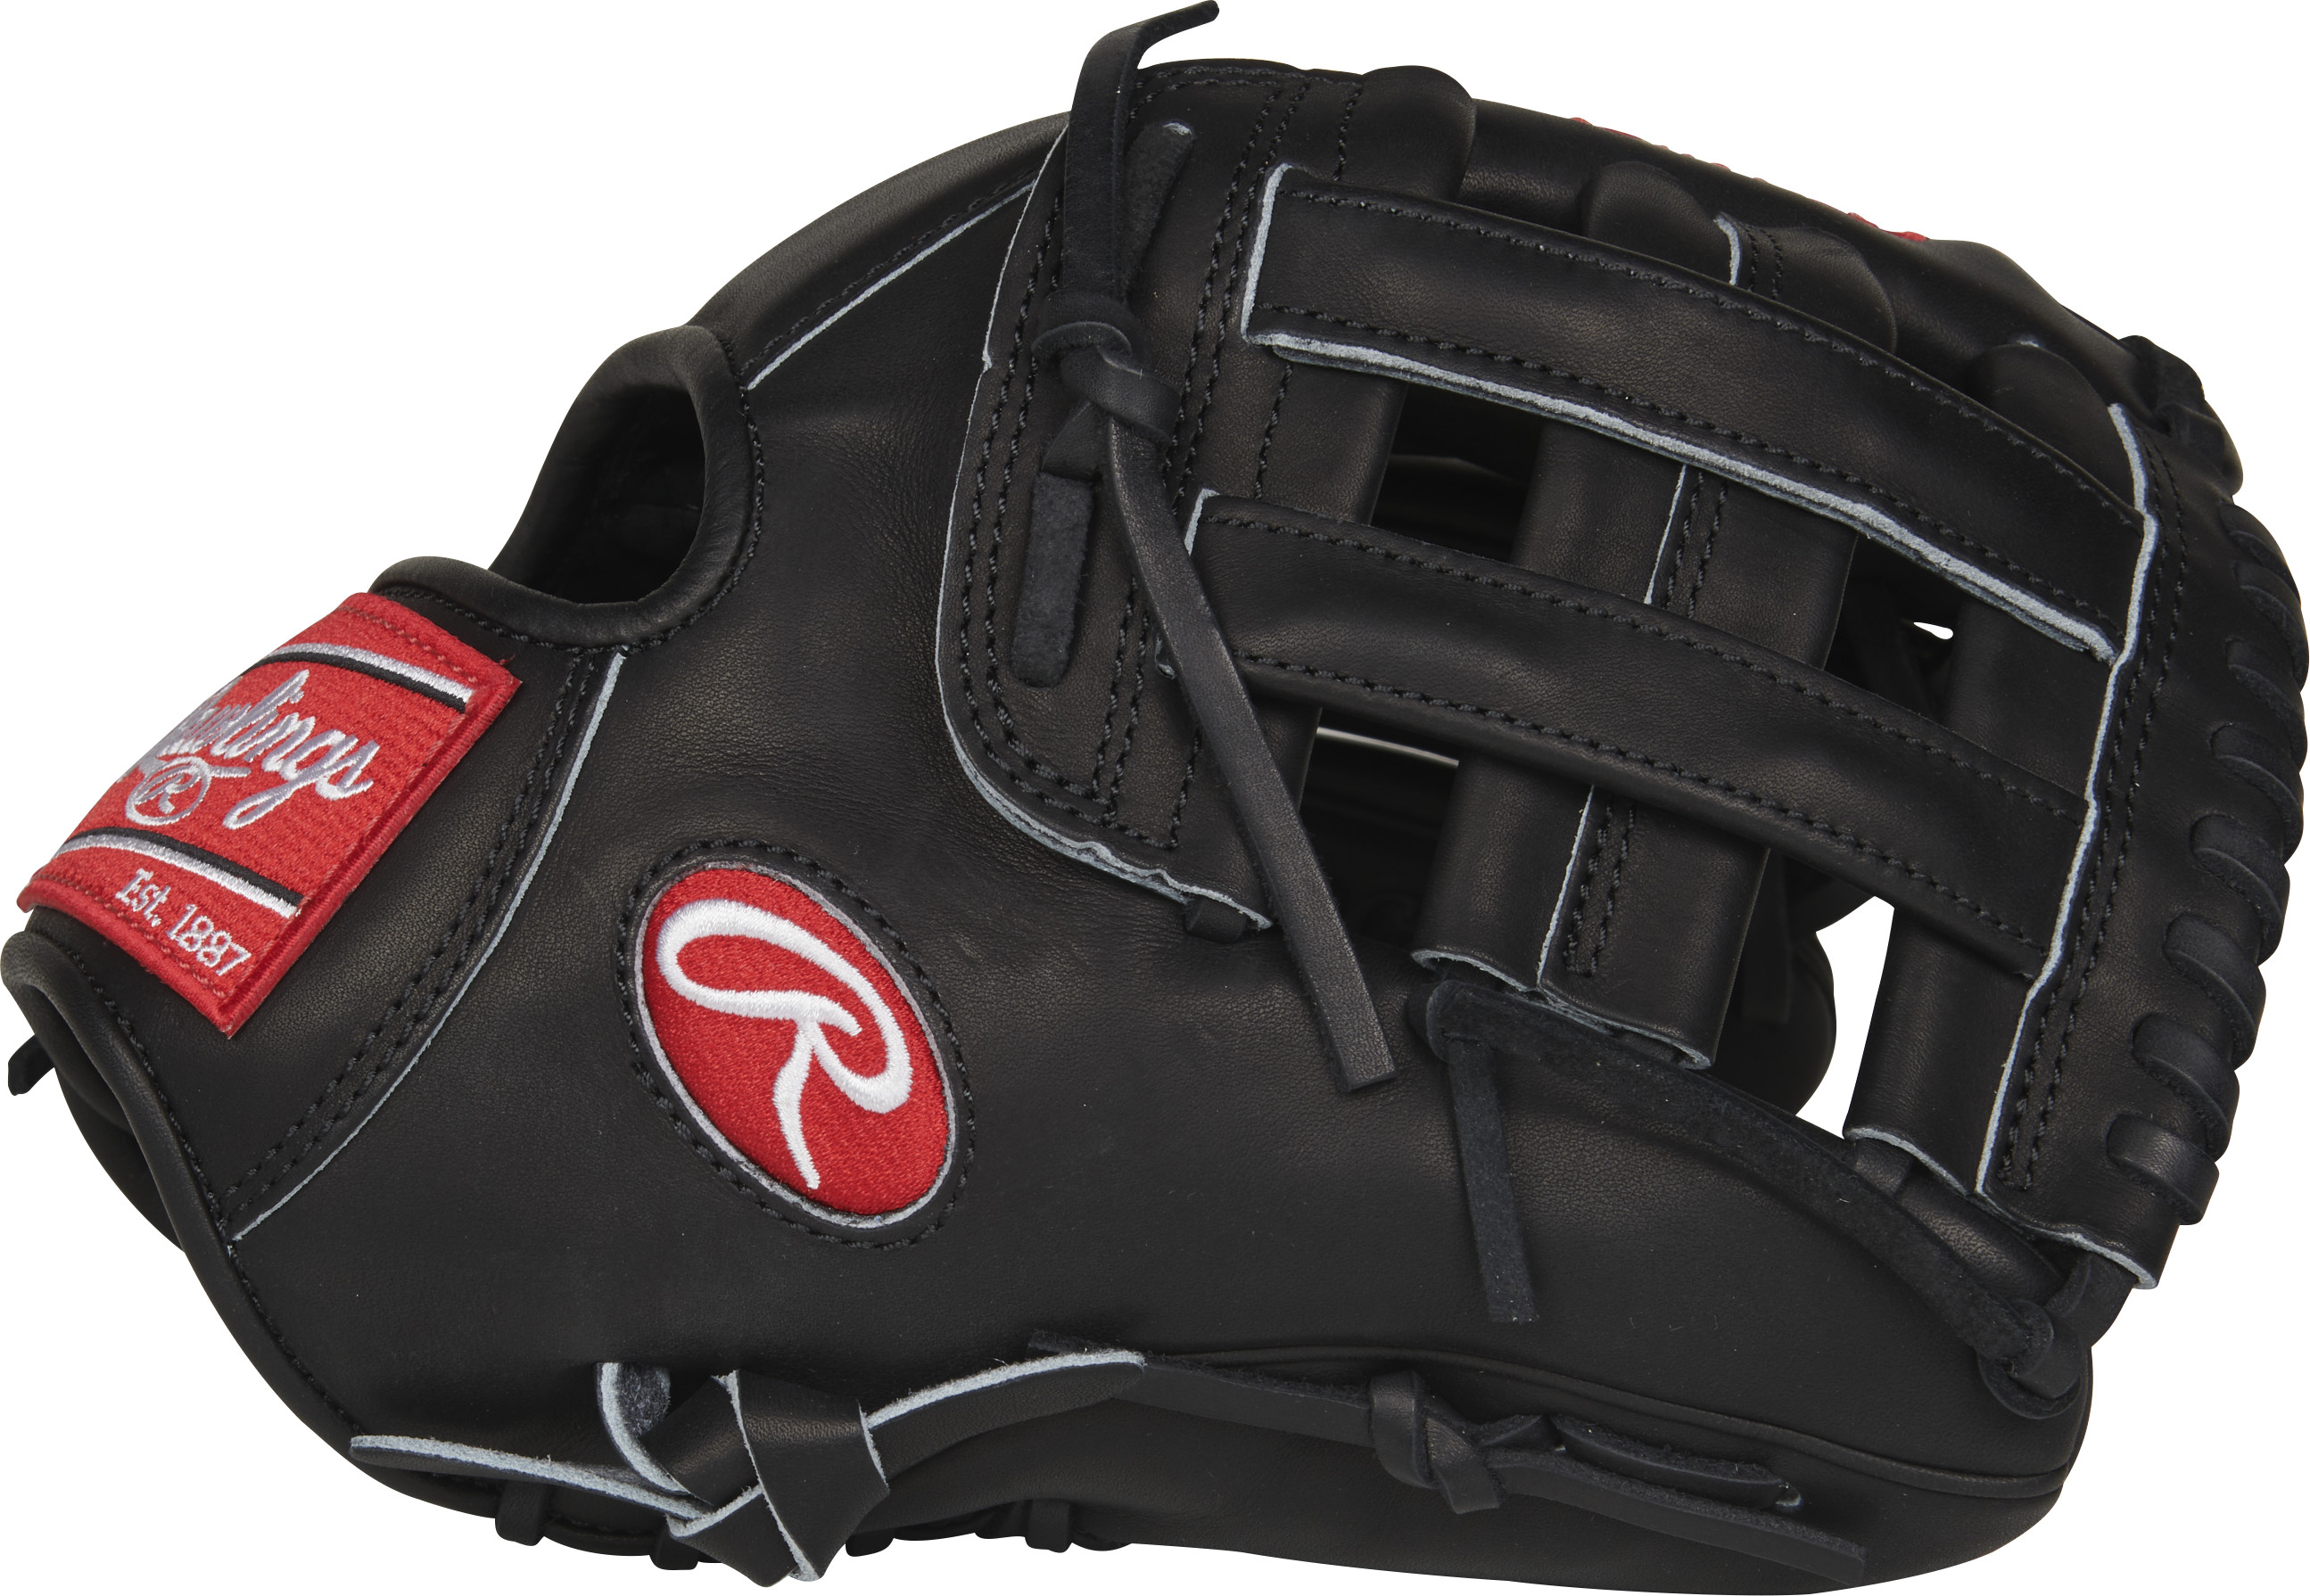 http://www.bestbatdeals.com/images/gloves/rawlings/PROCS5-3.jpg